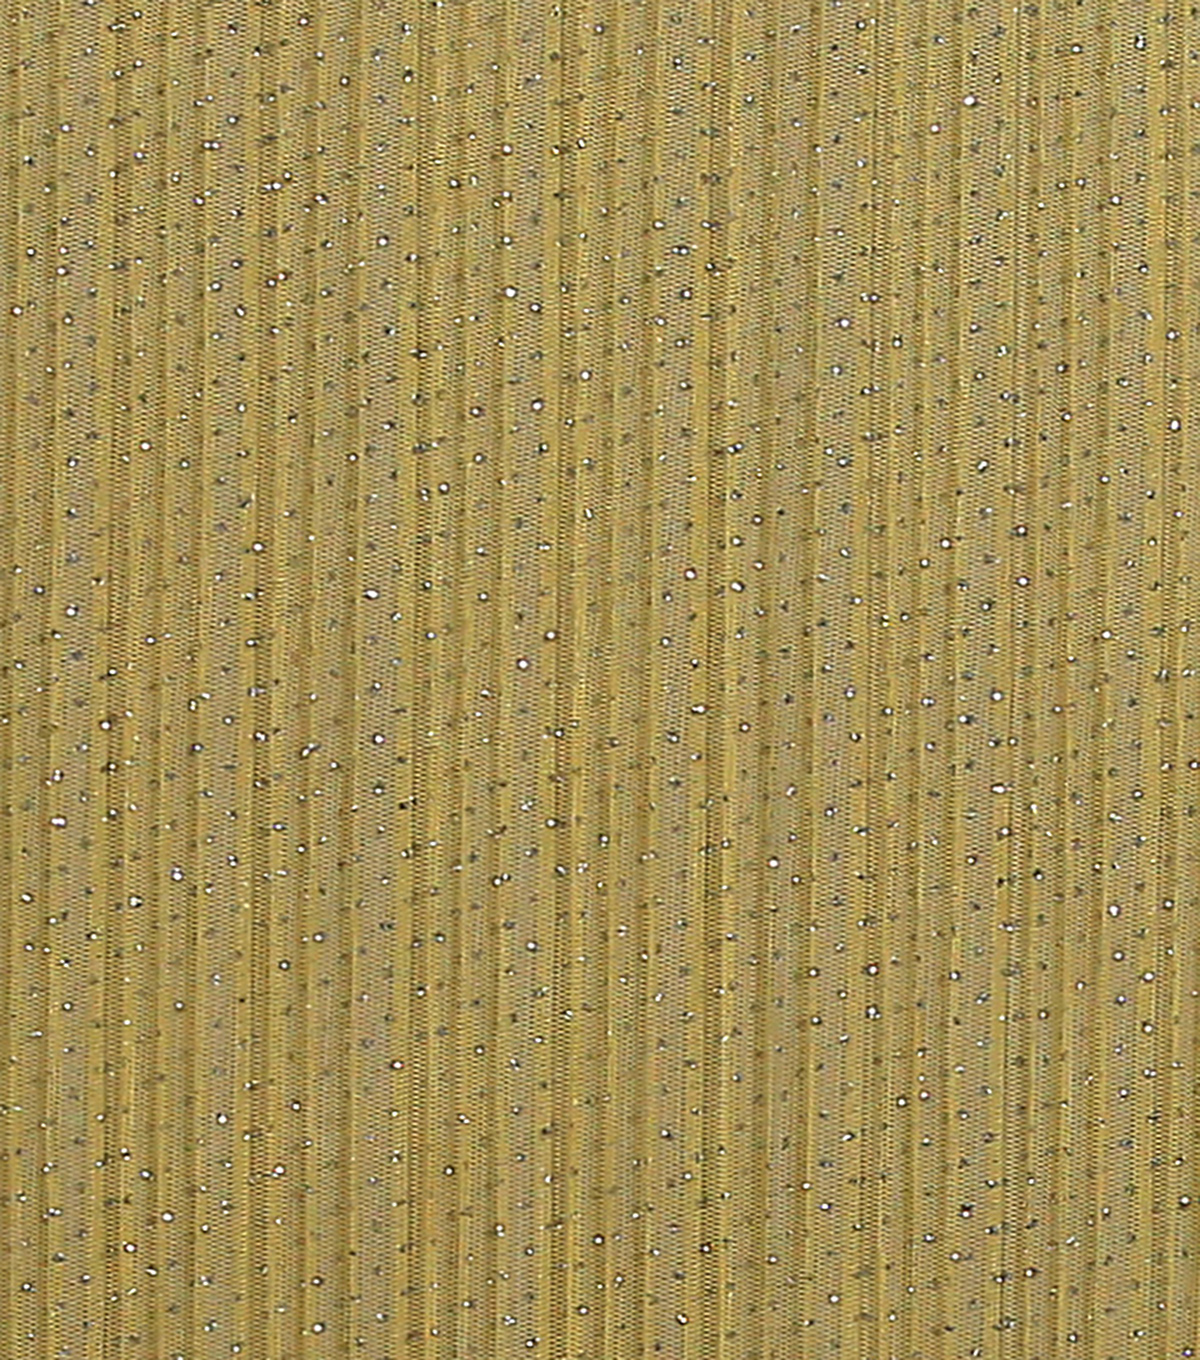 Sew Sweet Glitter Pleat Mesh Fabric 58\u0022-Golden Haze